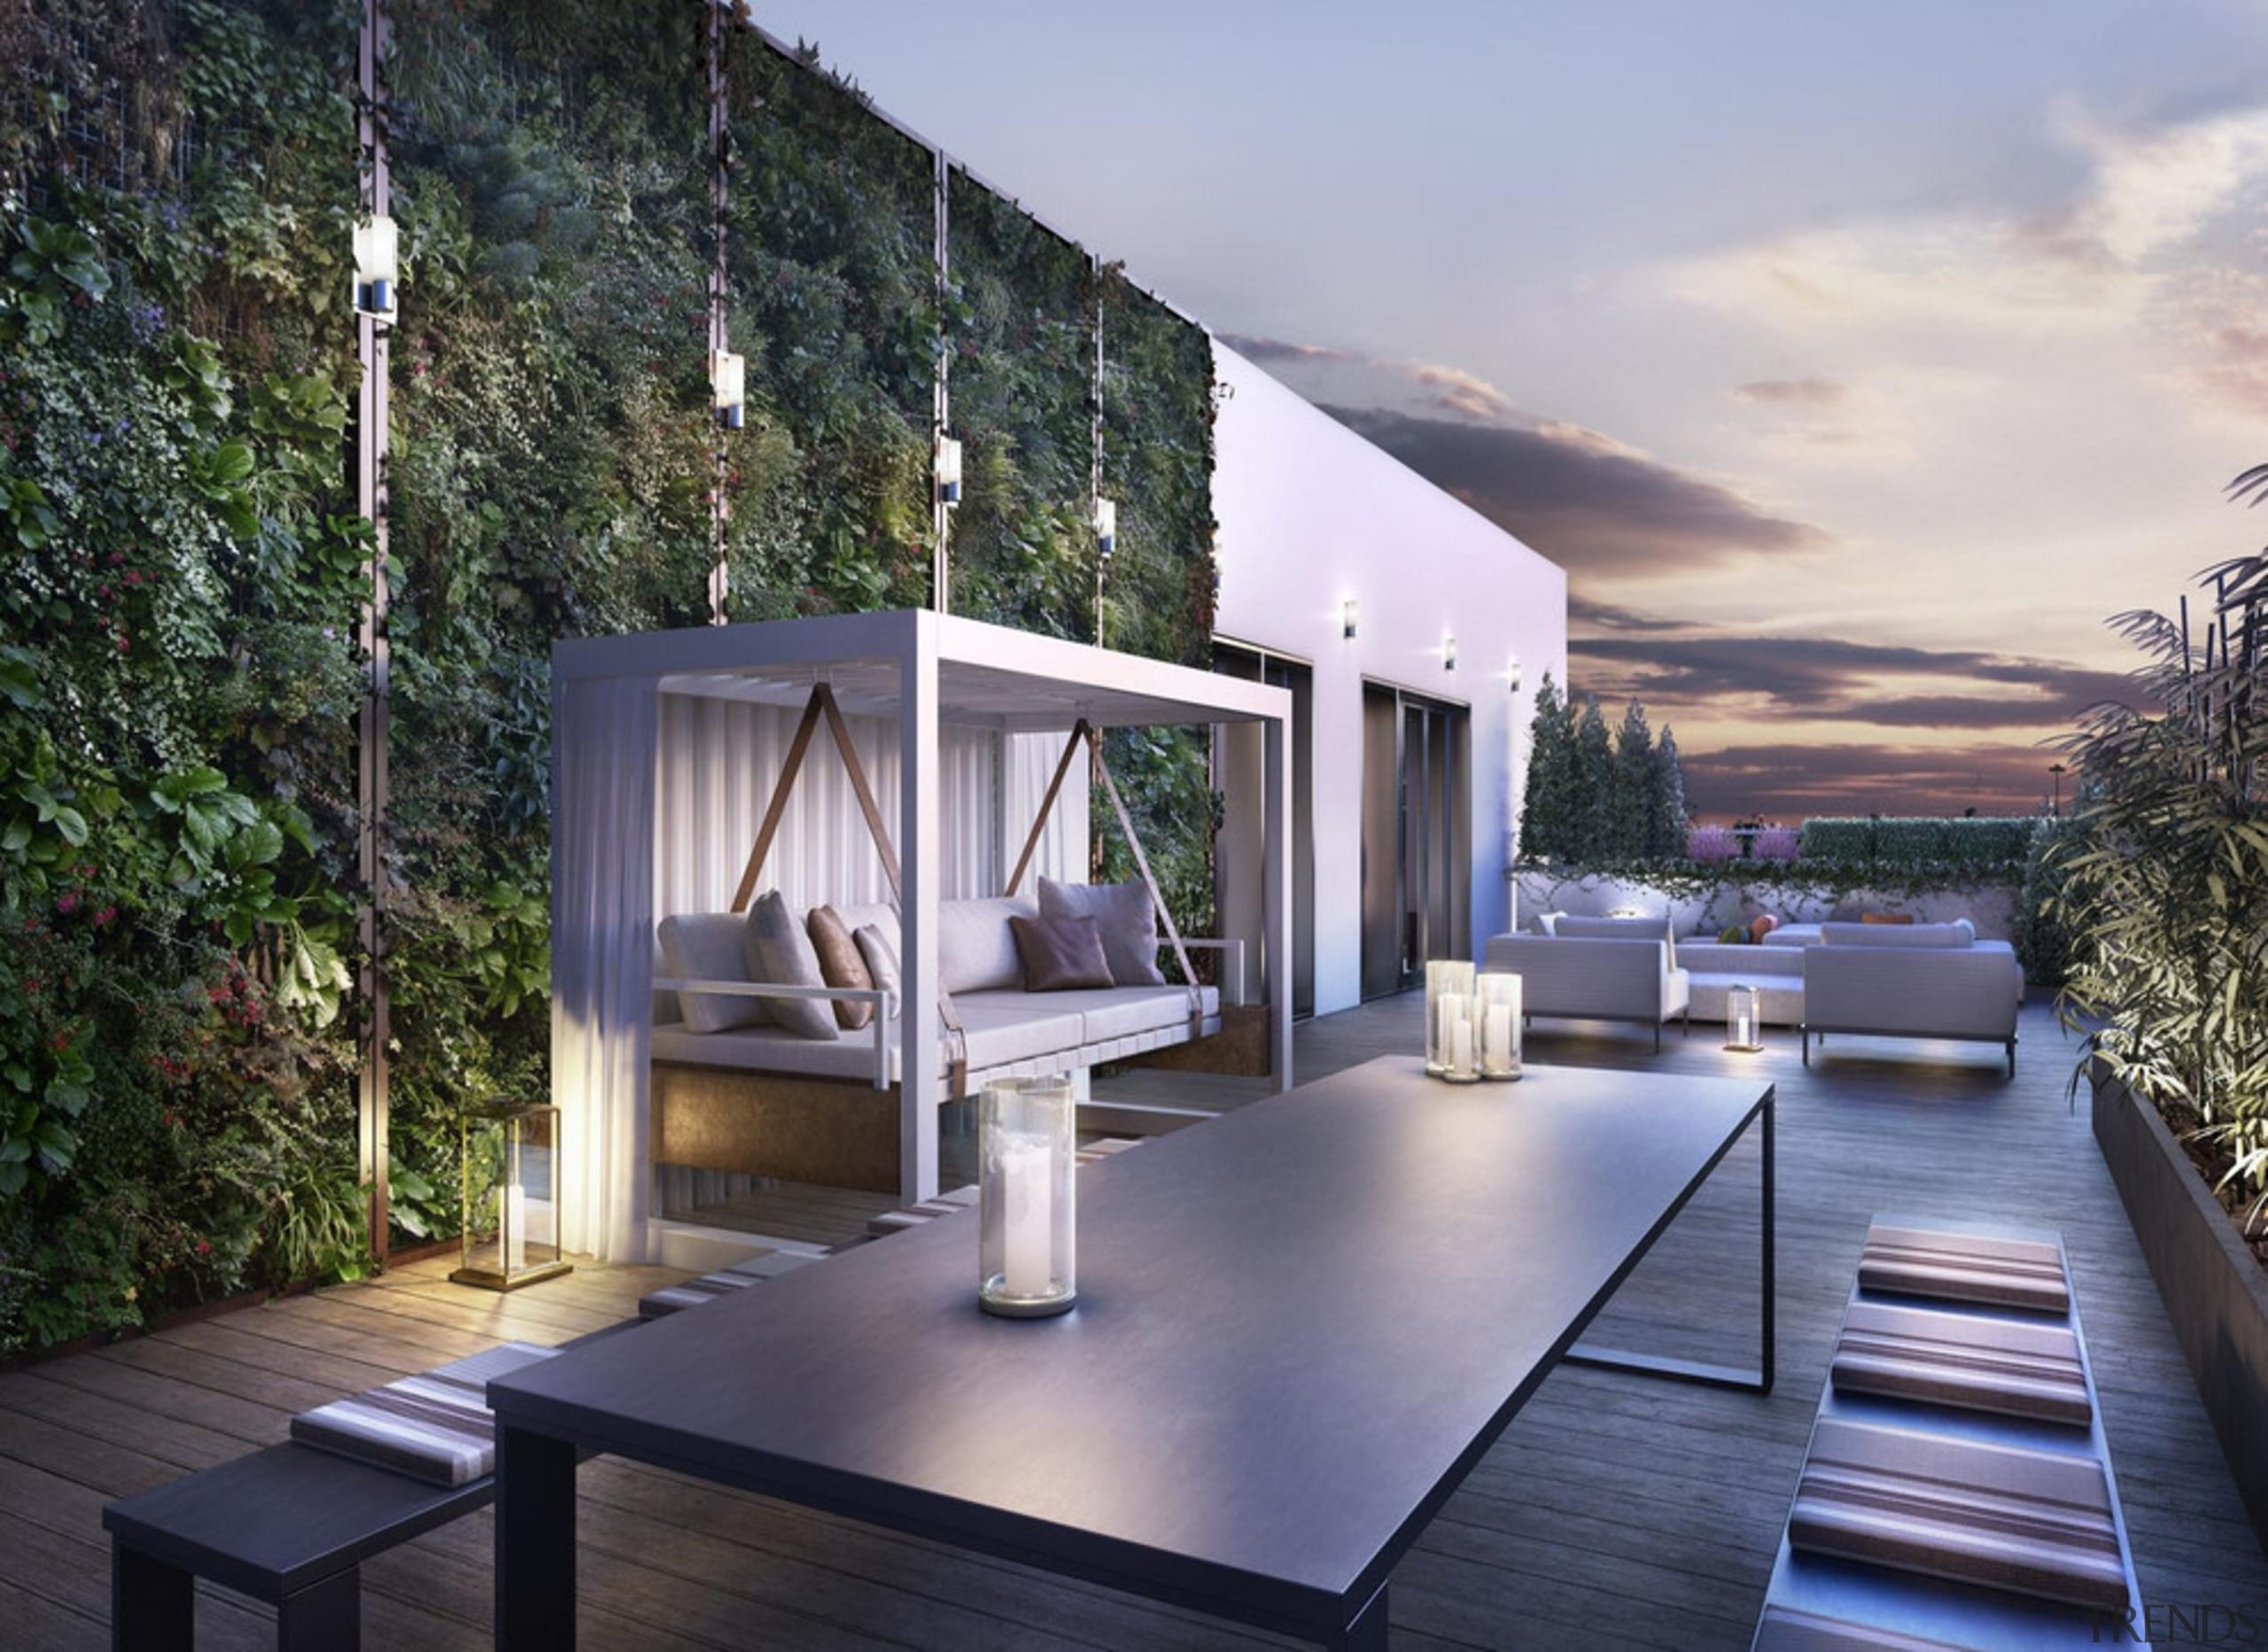 This new development The Chilterns is situated in architecture, home, house, real estate, black, gray